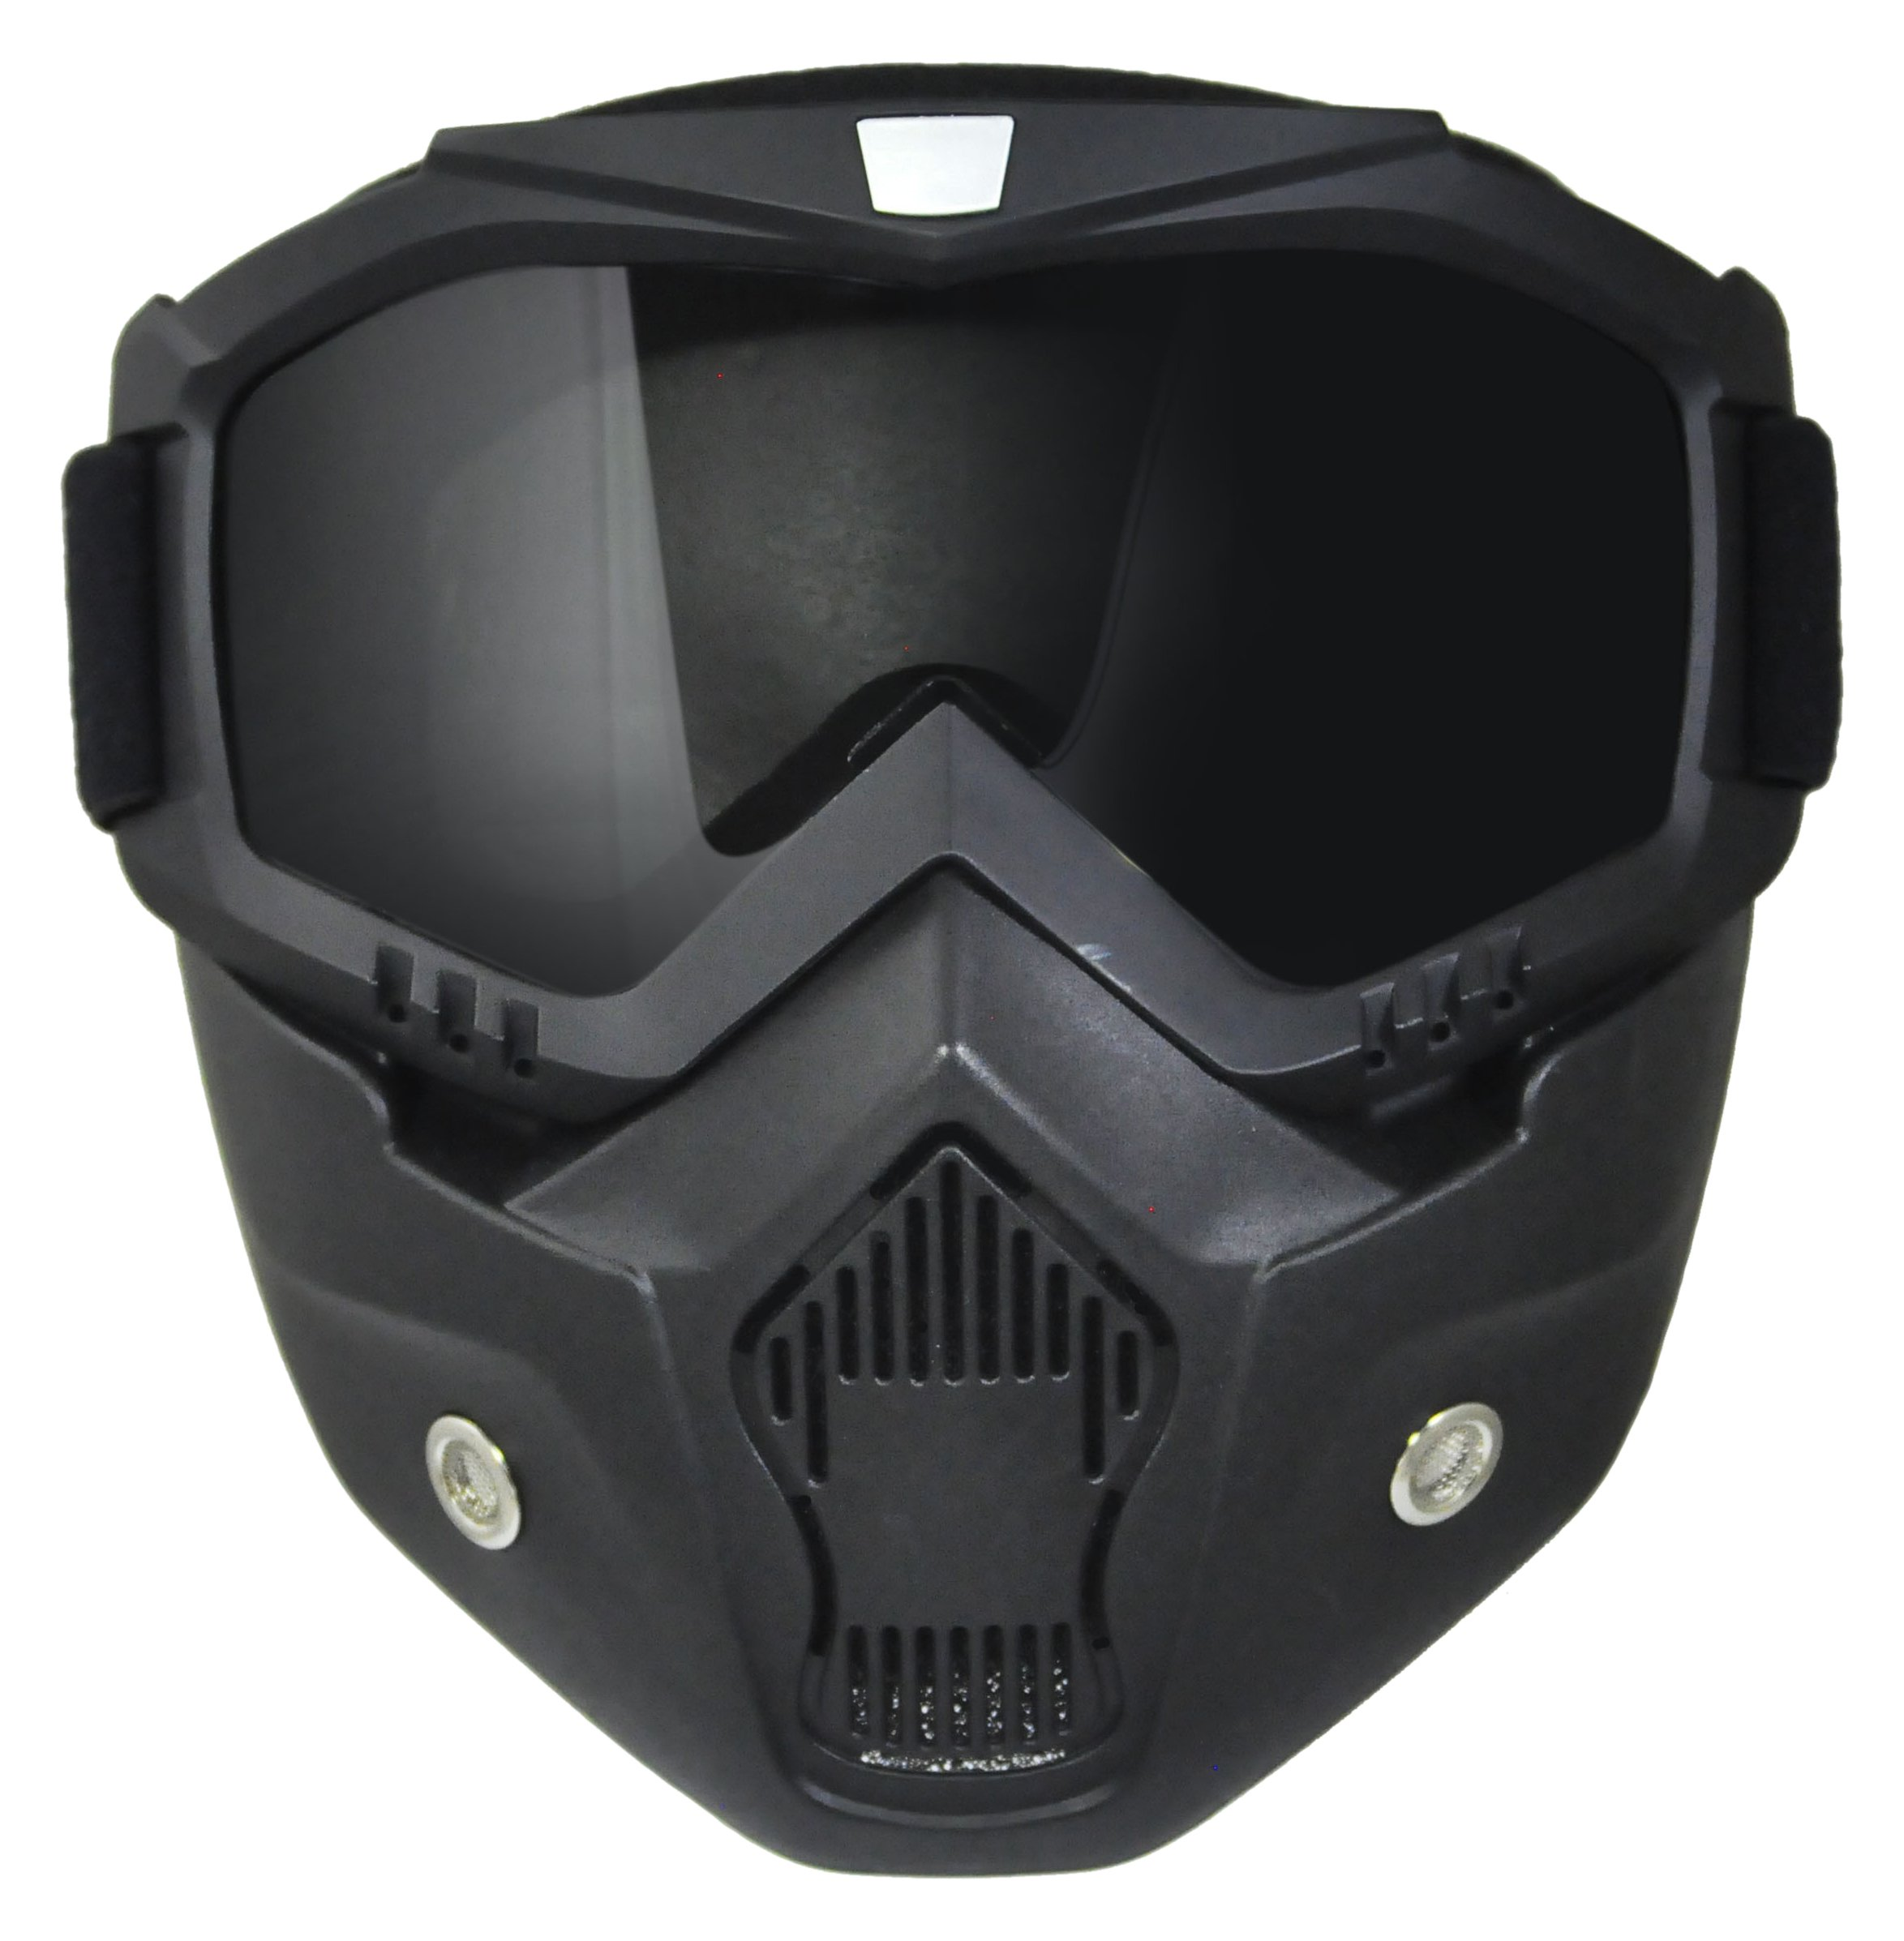 TORC Unisex-Adult Goggle Mask (Black, One Size) (for Open Face and Half Face Helmet)